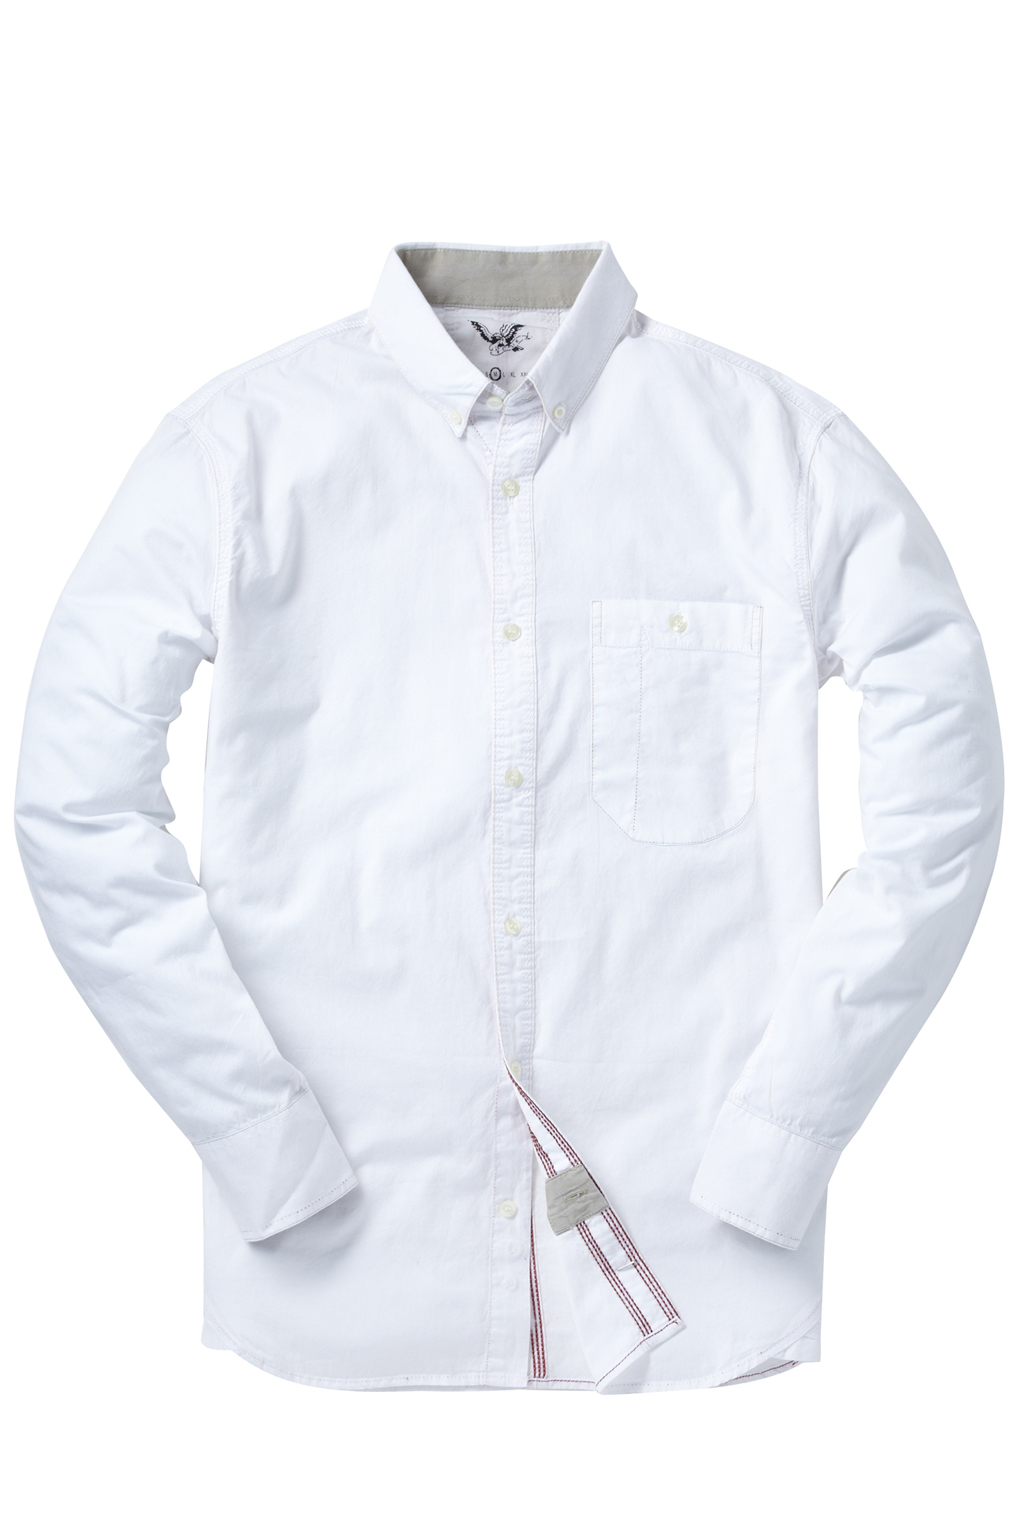 New-French-Connection-Cotton-Long-Sleeve-One-Pocket-Button-Shirt-Blue-White